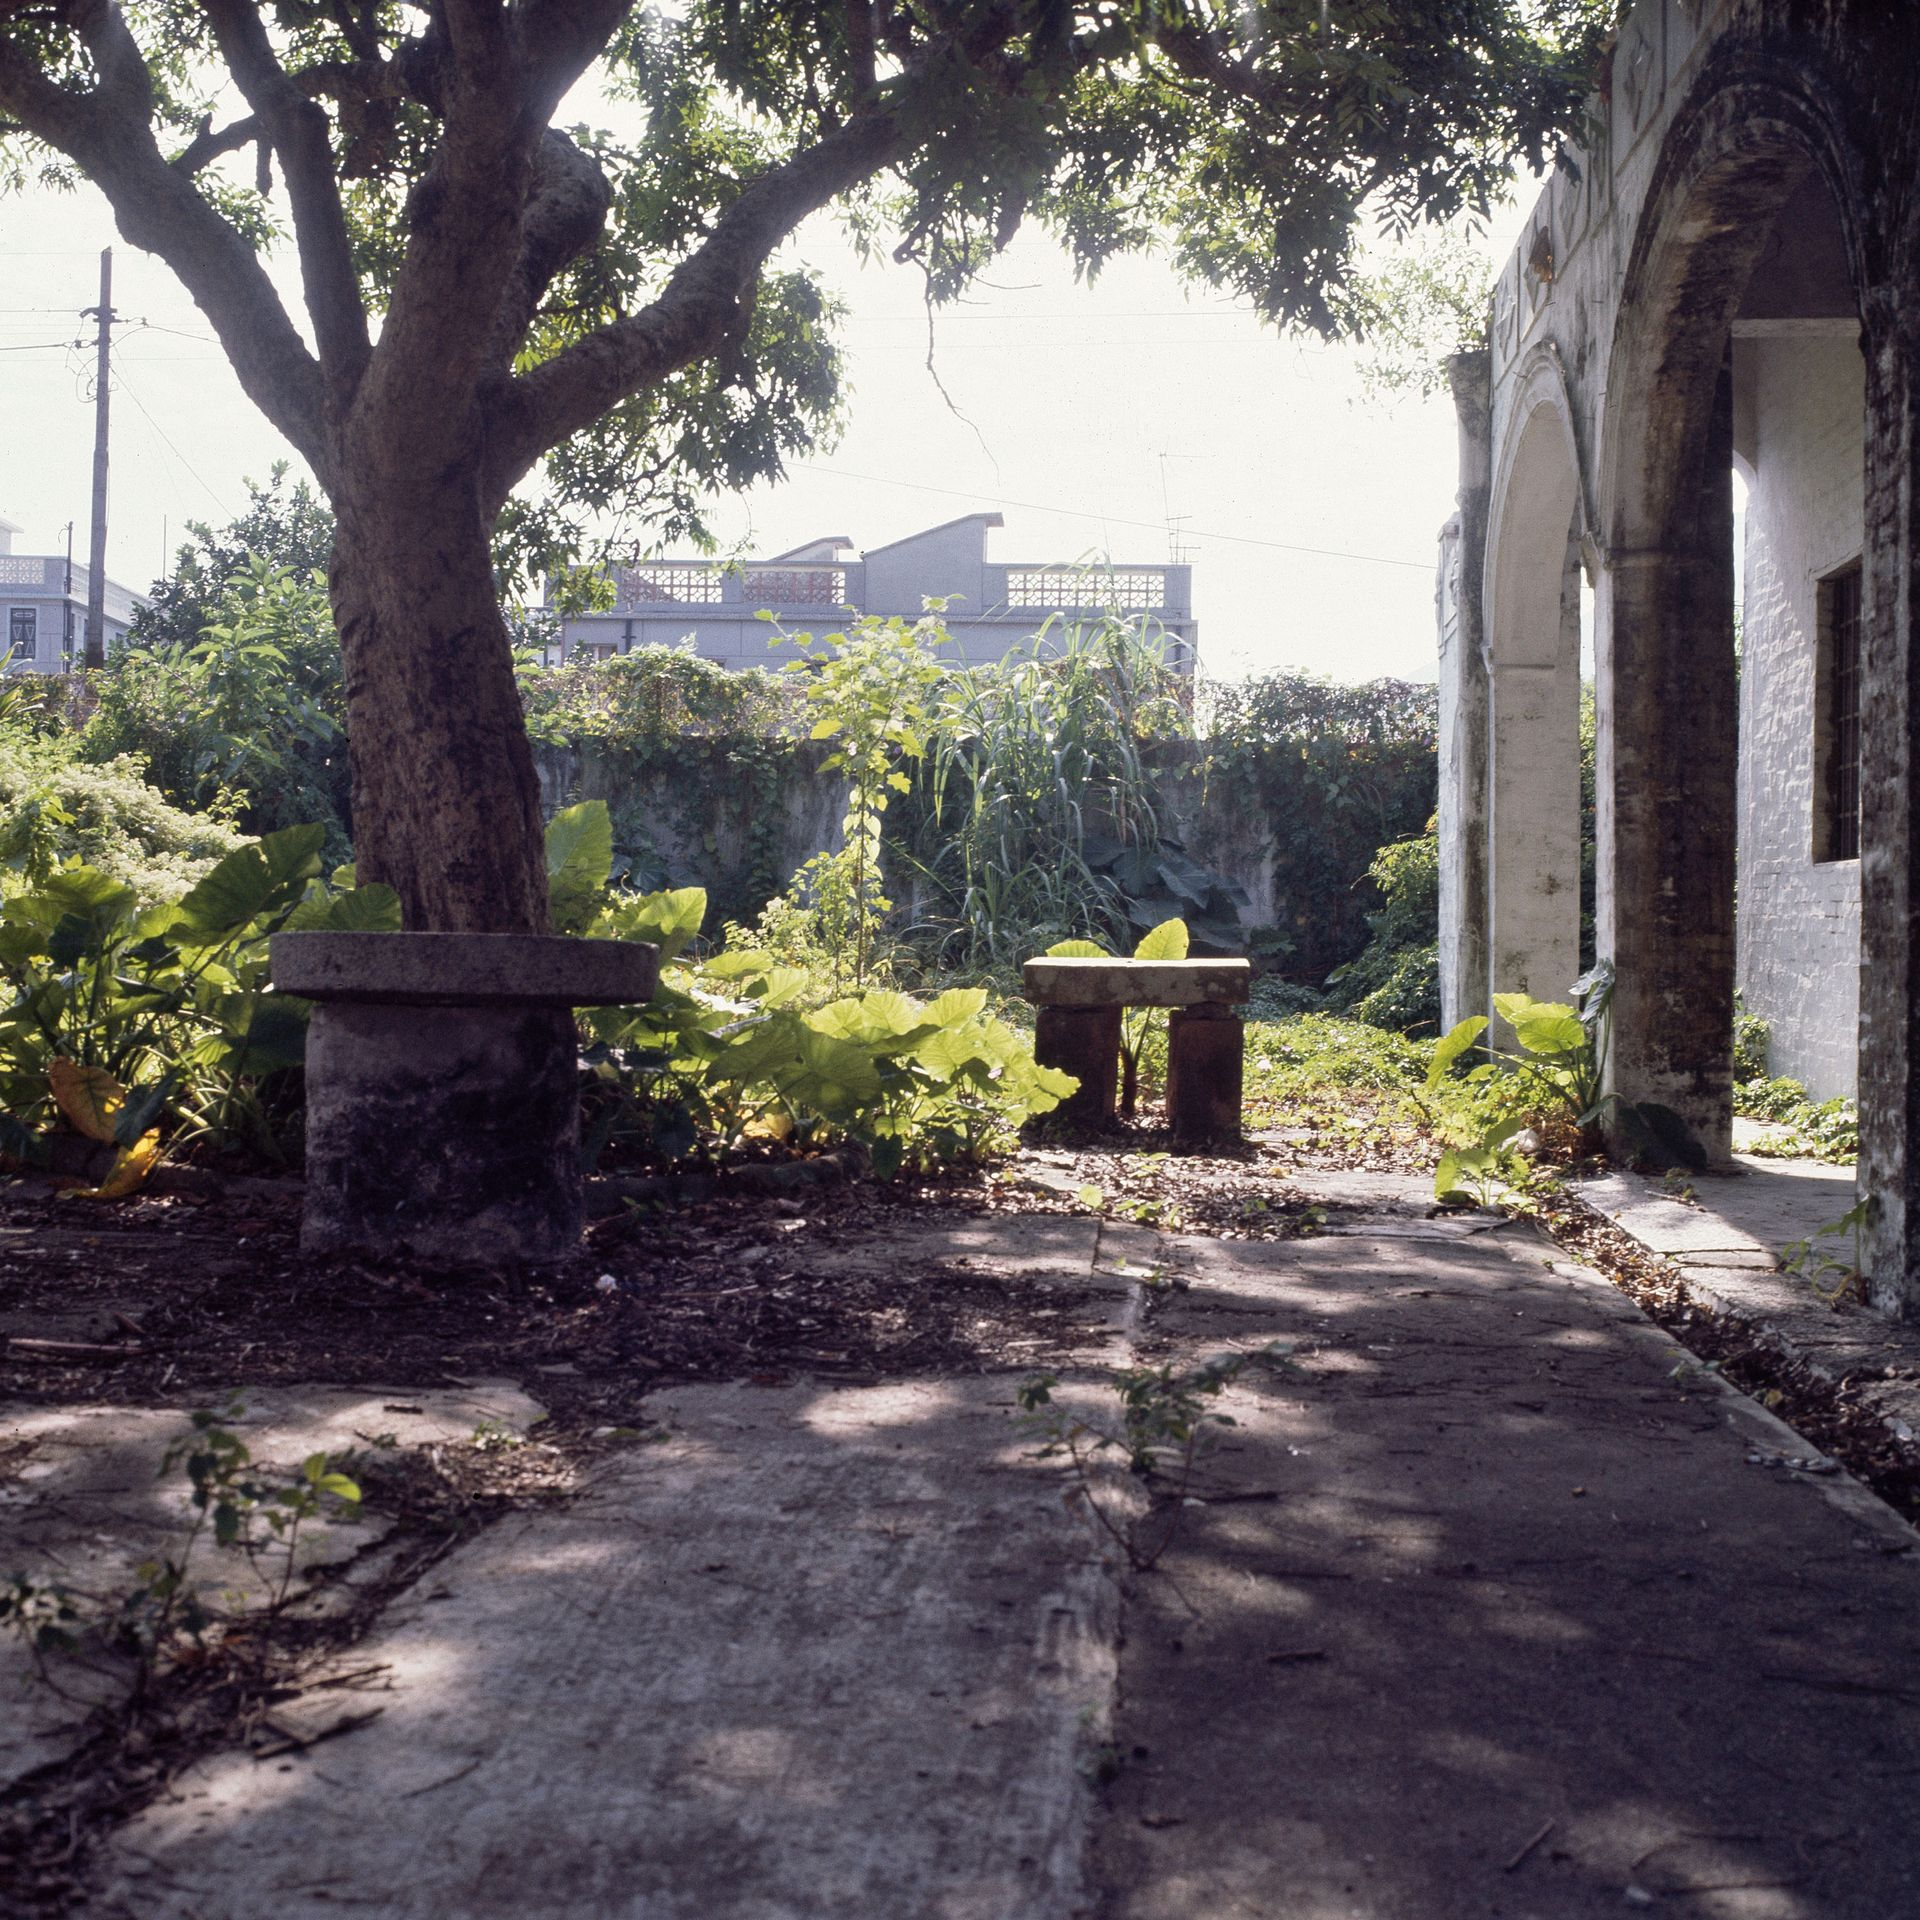 Deserted School Lane, Tuen Mun, Hong Kong 1980's